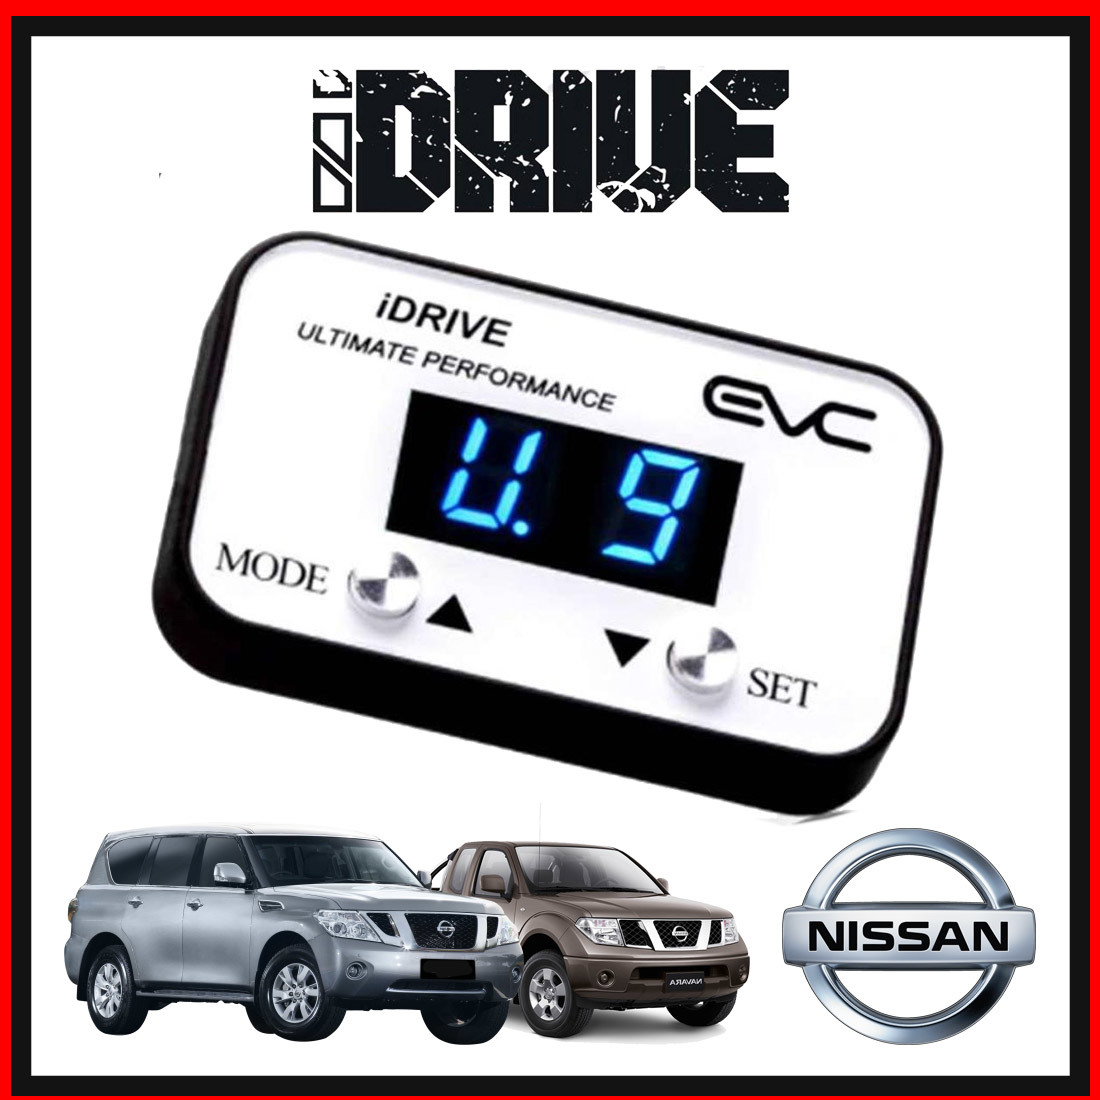 iDrive Windbooster Throttle Controller (Nissan) image